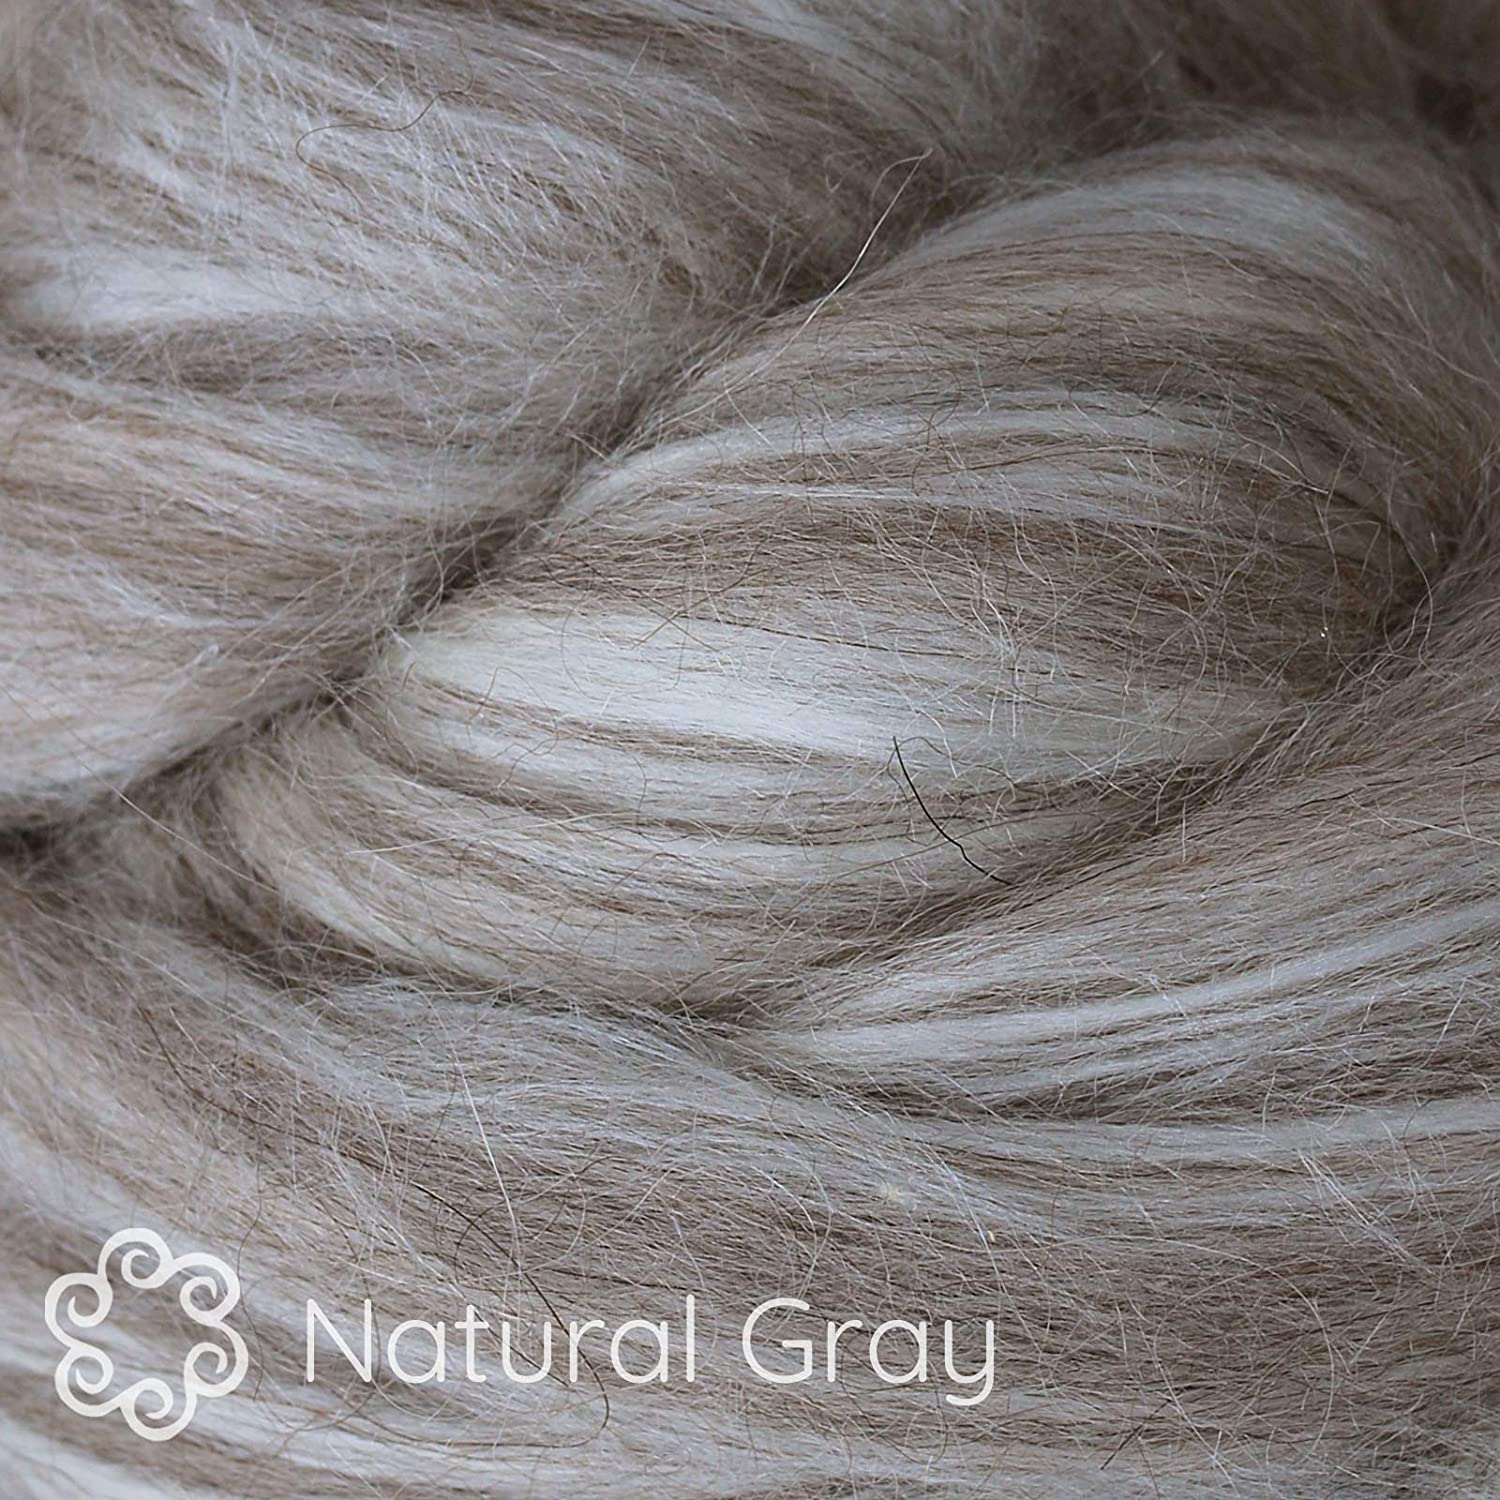 Natural Gray Felting Blending and Other Fiber Crafts Baby Alpaca Silk Fiber Blend Luxuriously Soft Combed Top Wool Roving for Spinning